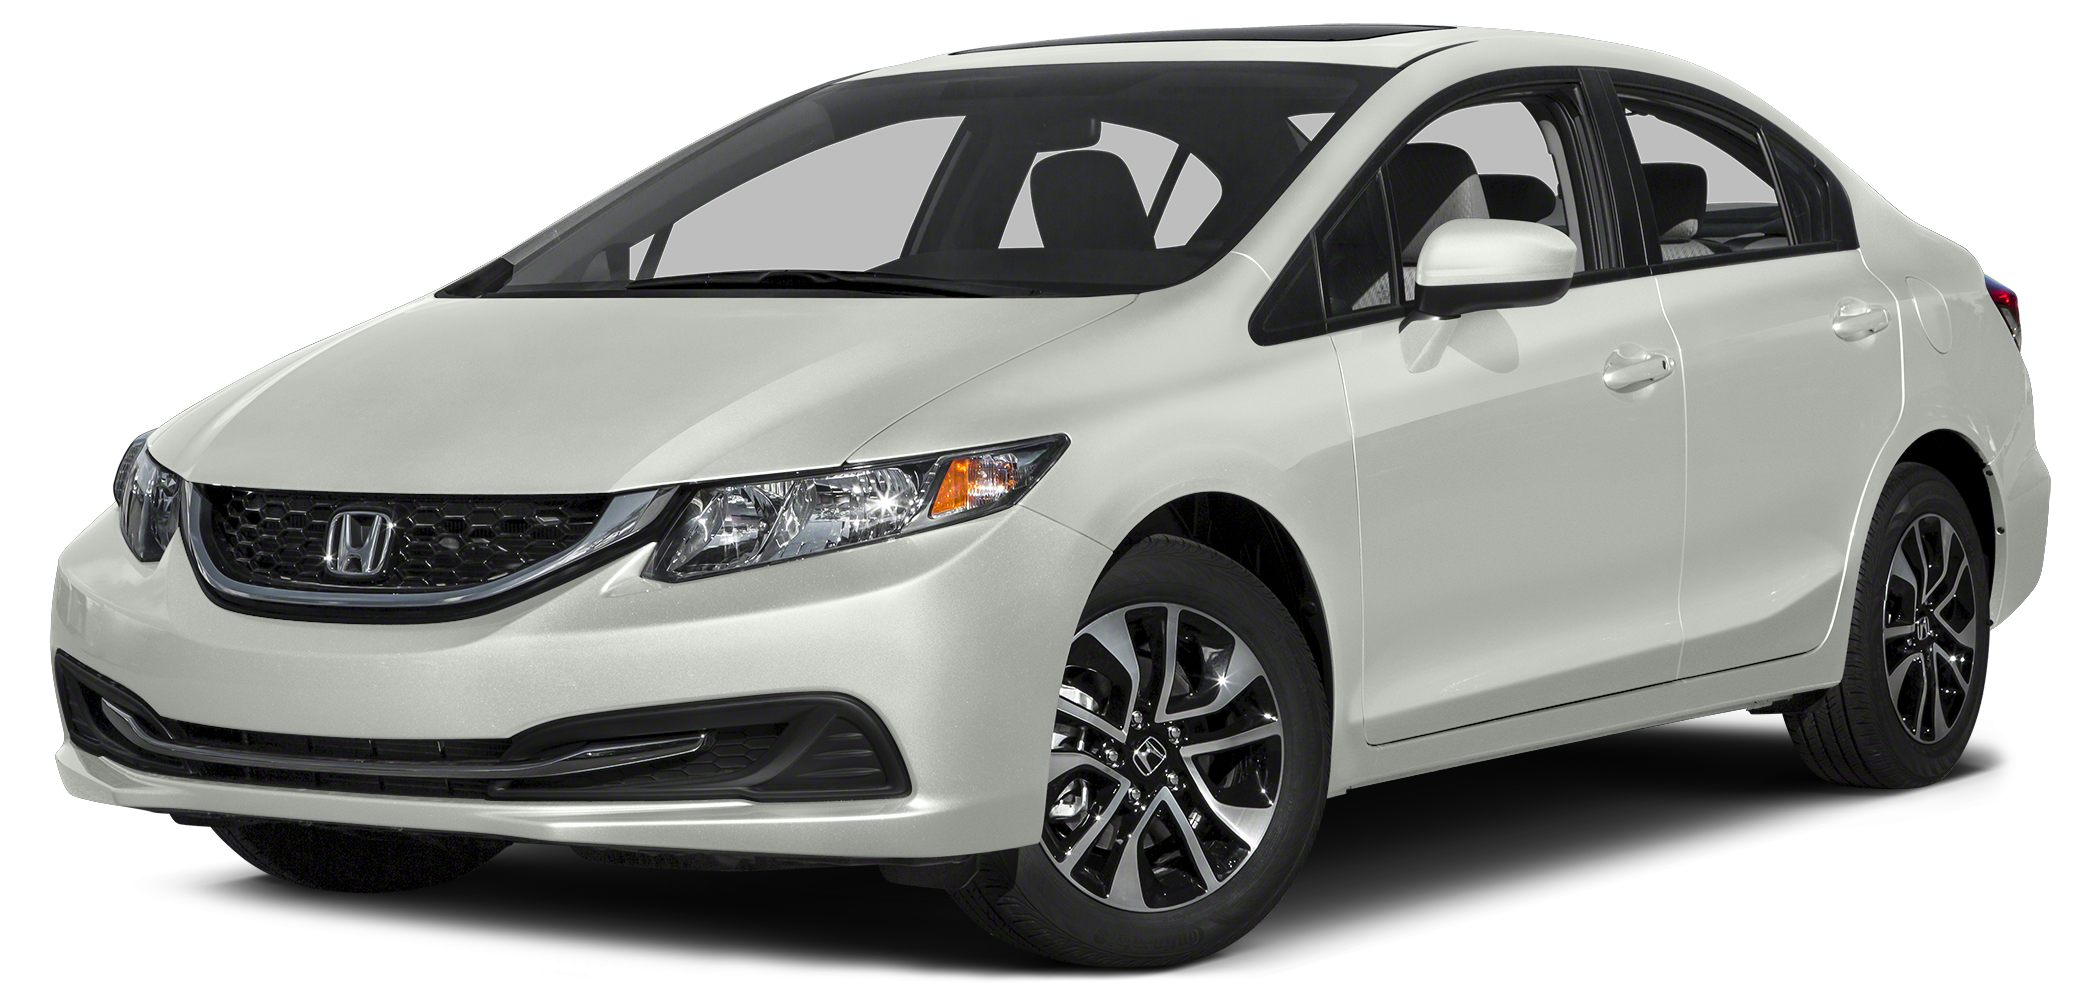 2015 Honda Civic EX The gas savings gives hybrids a run for their money Manages Mileage Masterful